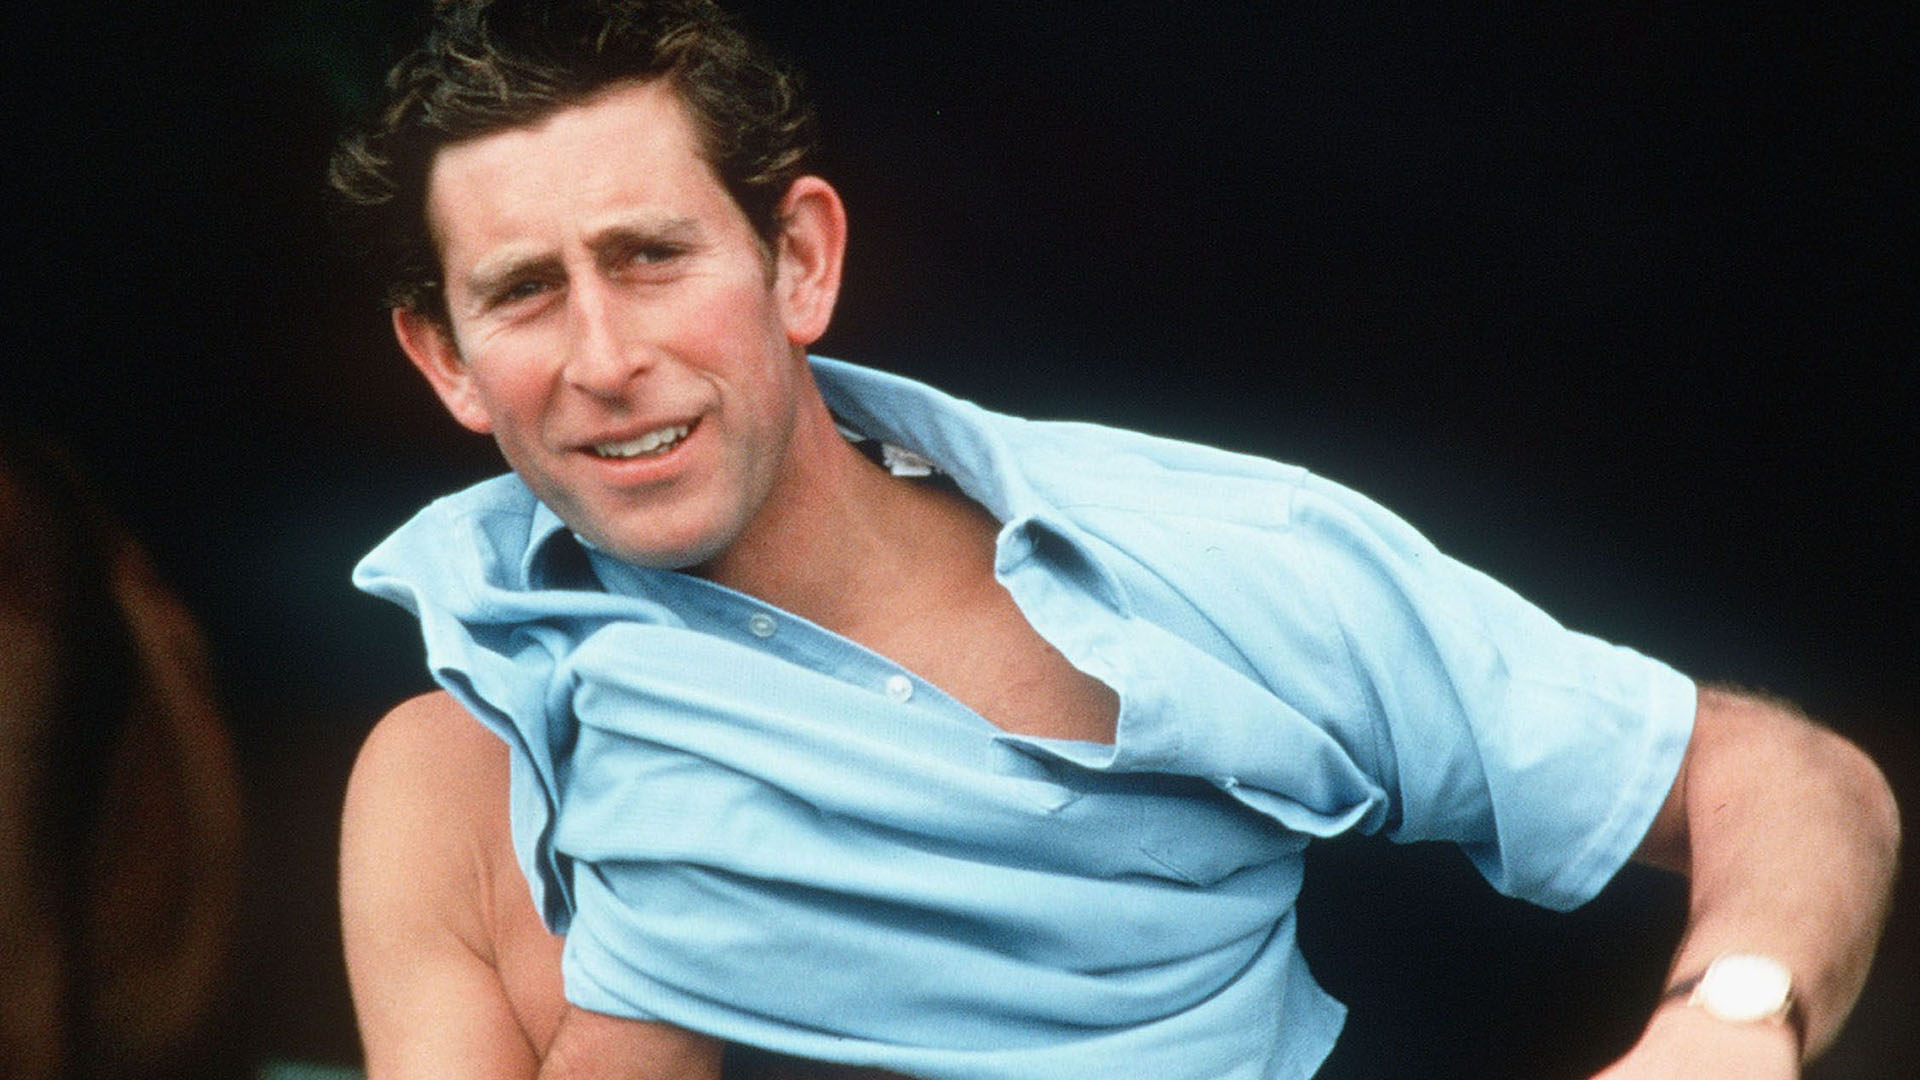 In his younger days, Prince Charles used to be a catch!